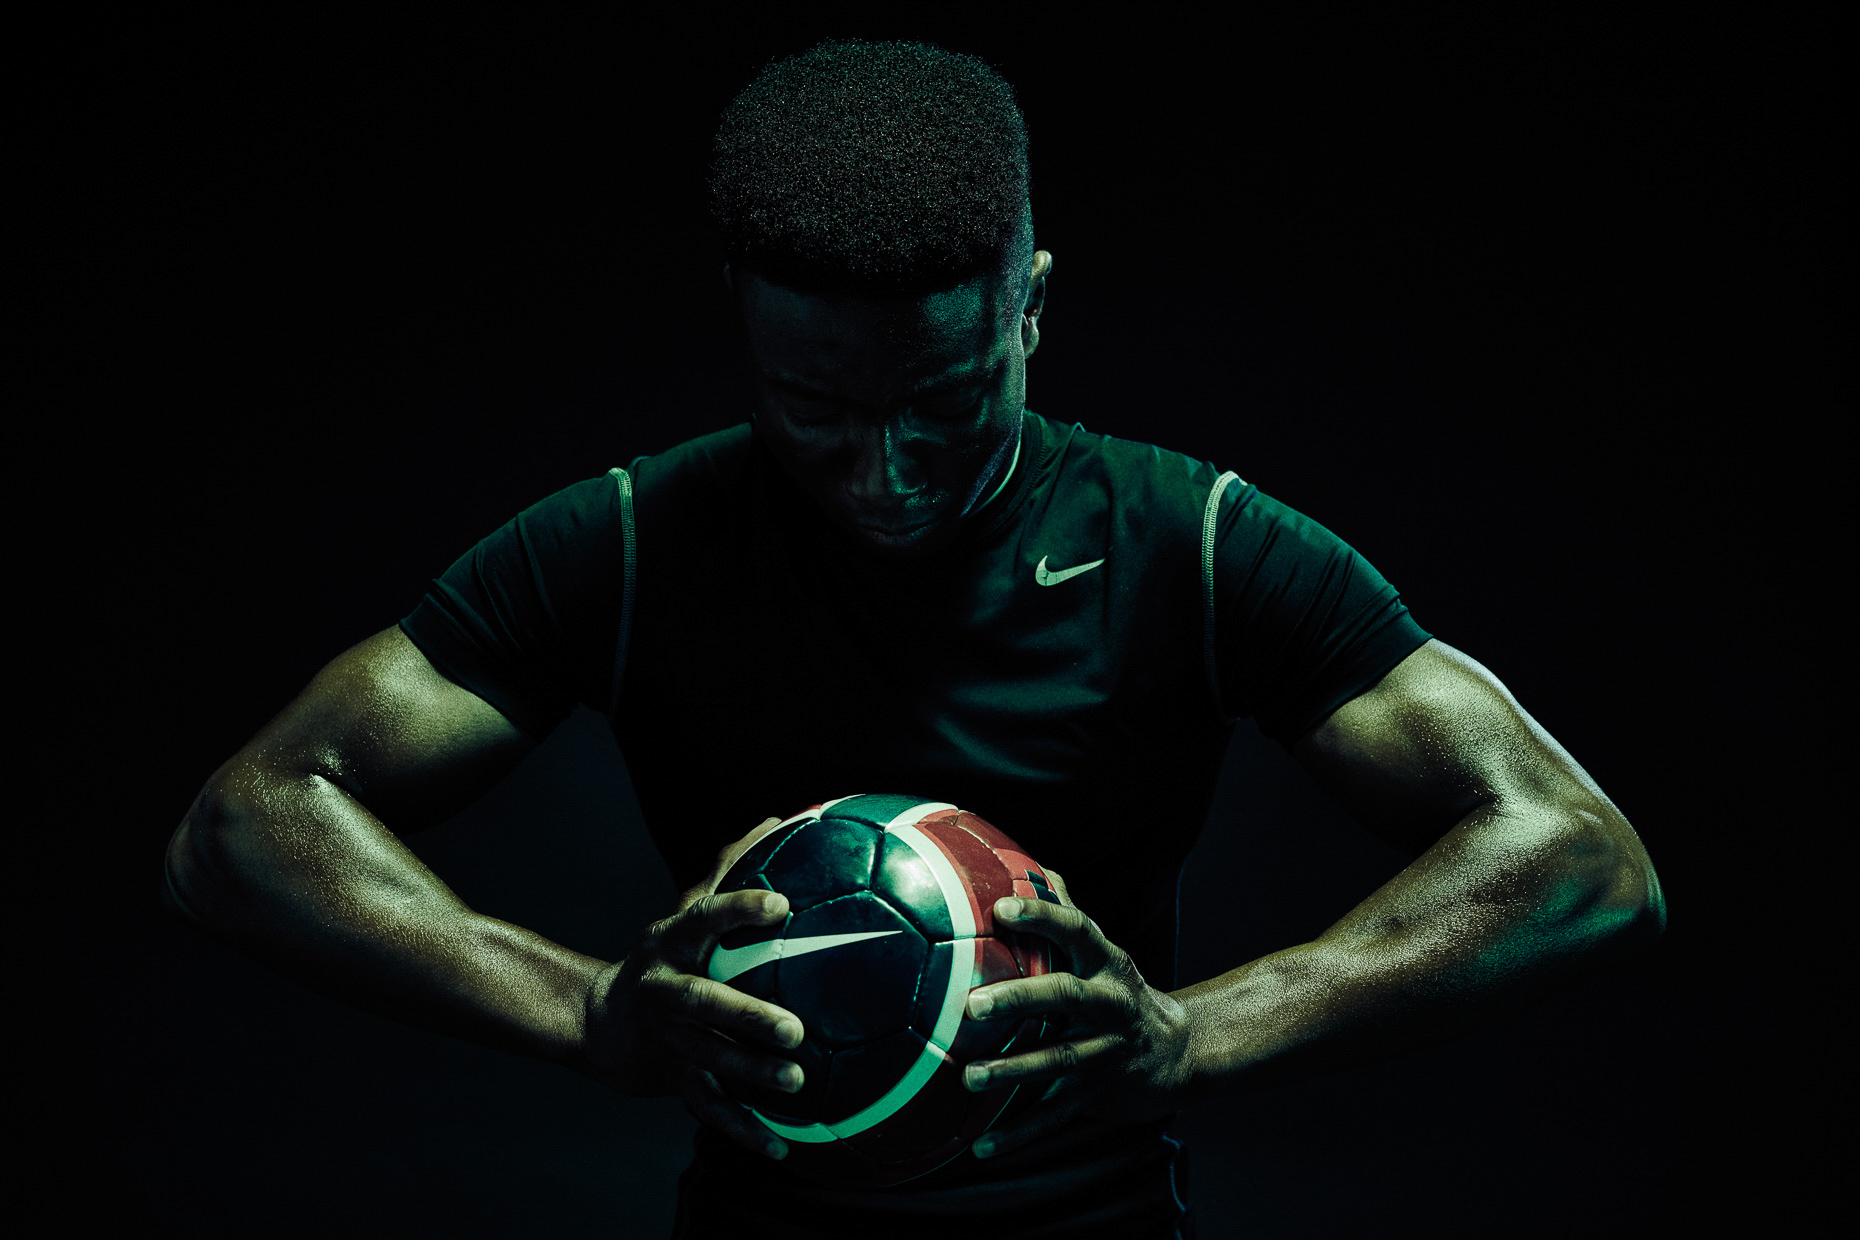 Nike soccer futbol Versace Sonachi holding the ball in a dark scene lit wiht green and blue gels by Andy Batt